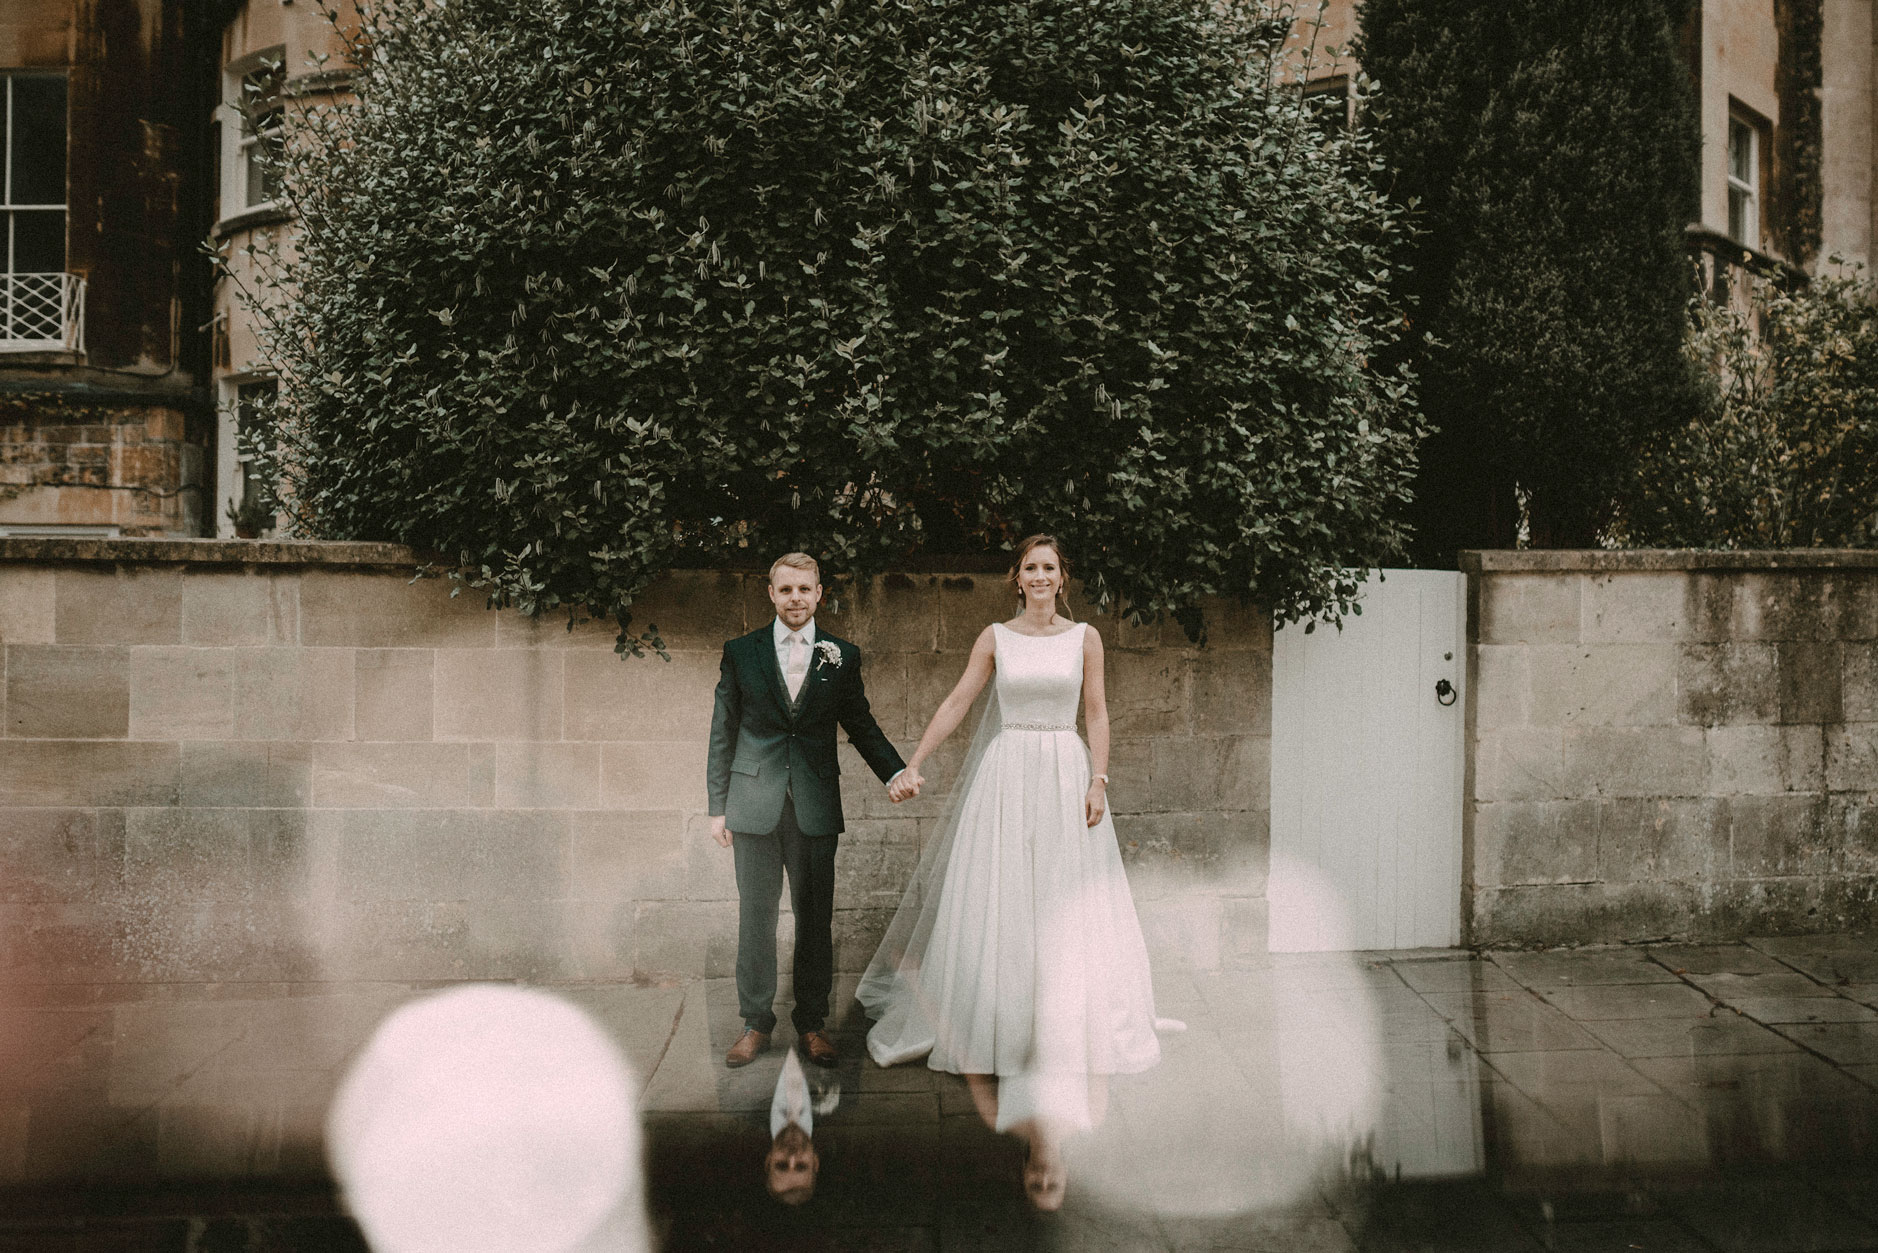 Bride and groom outside The Assembly Rooms in Bath